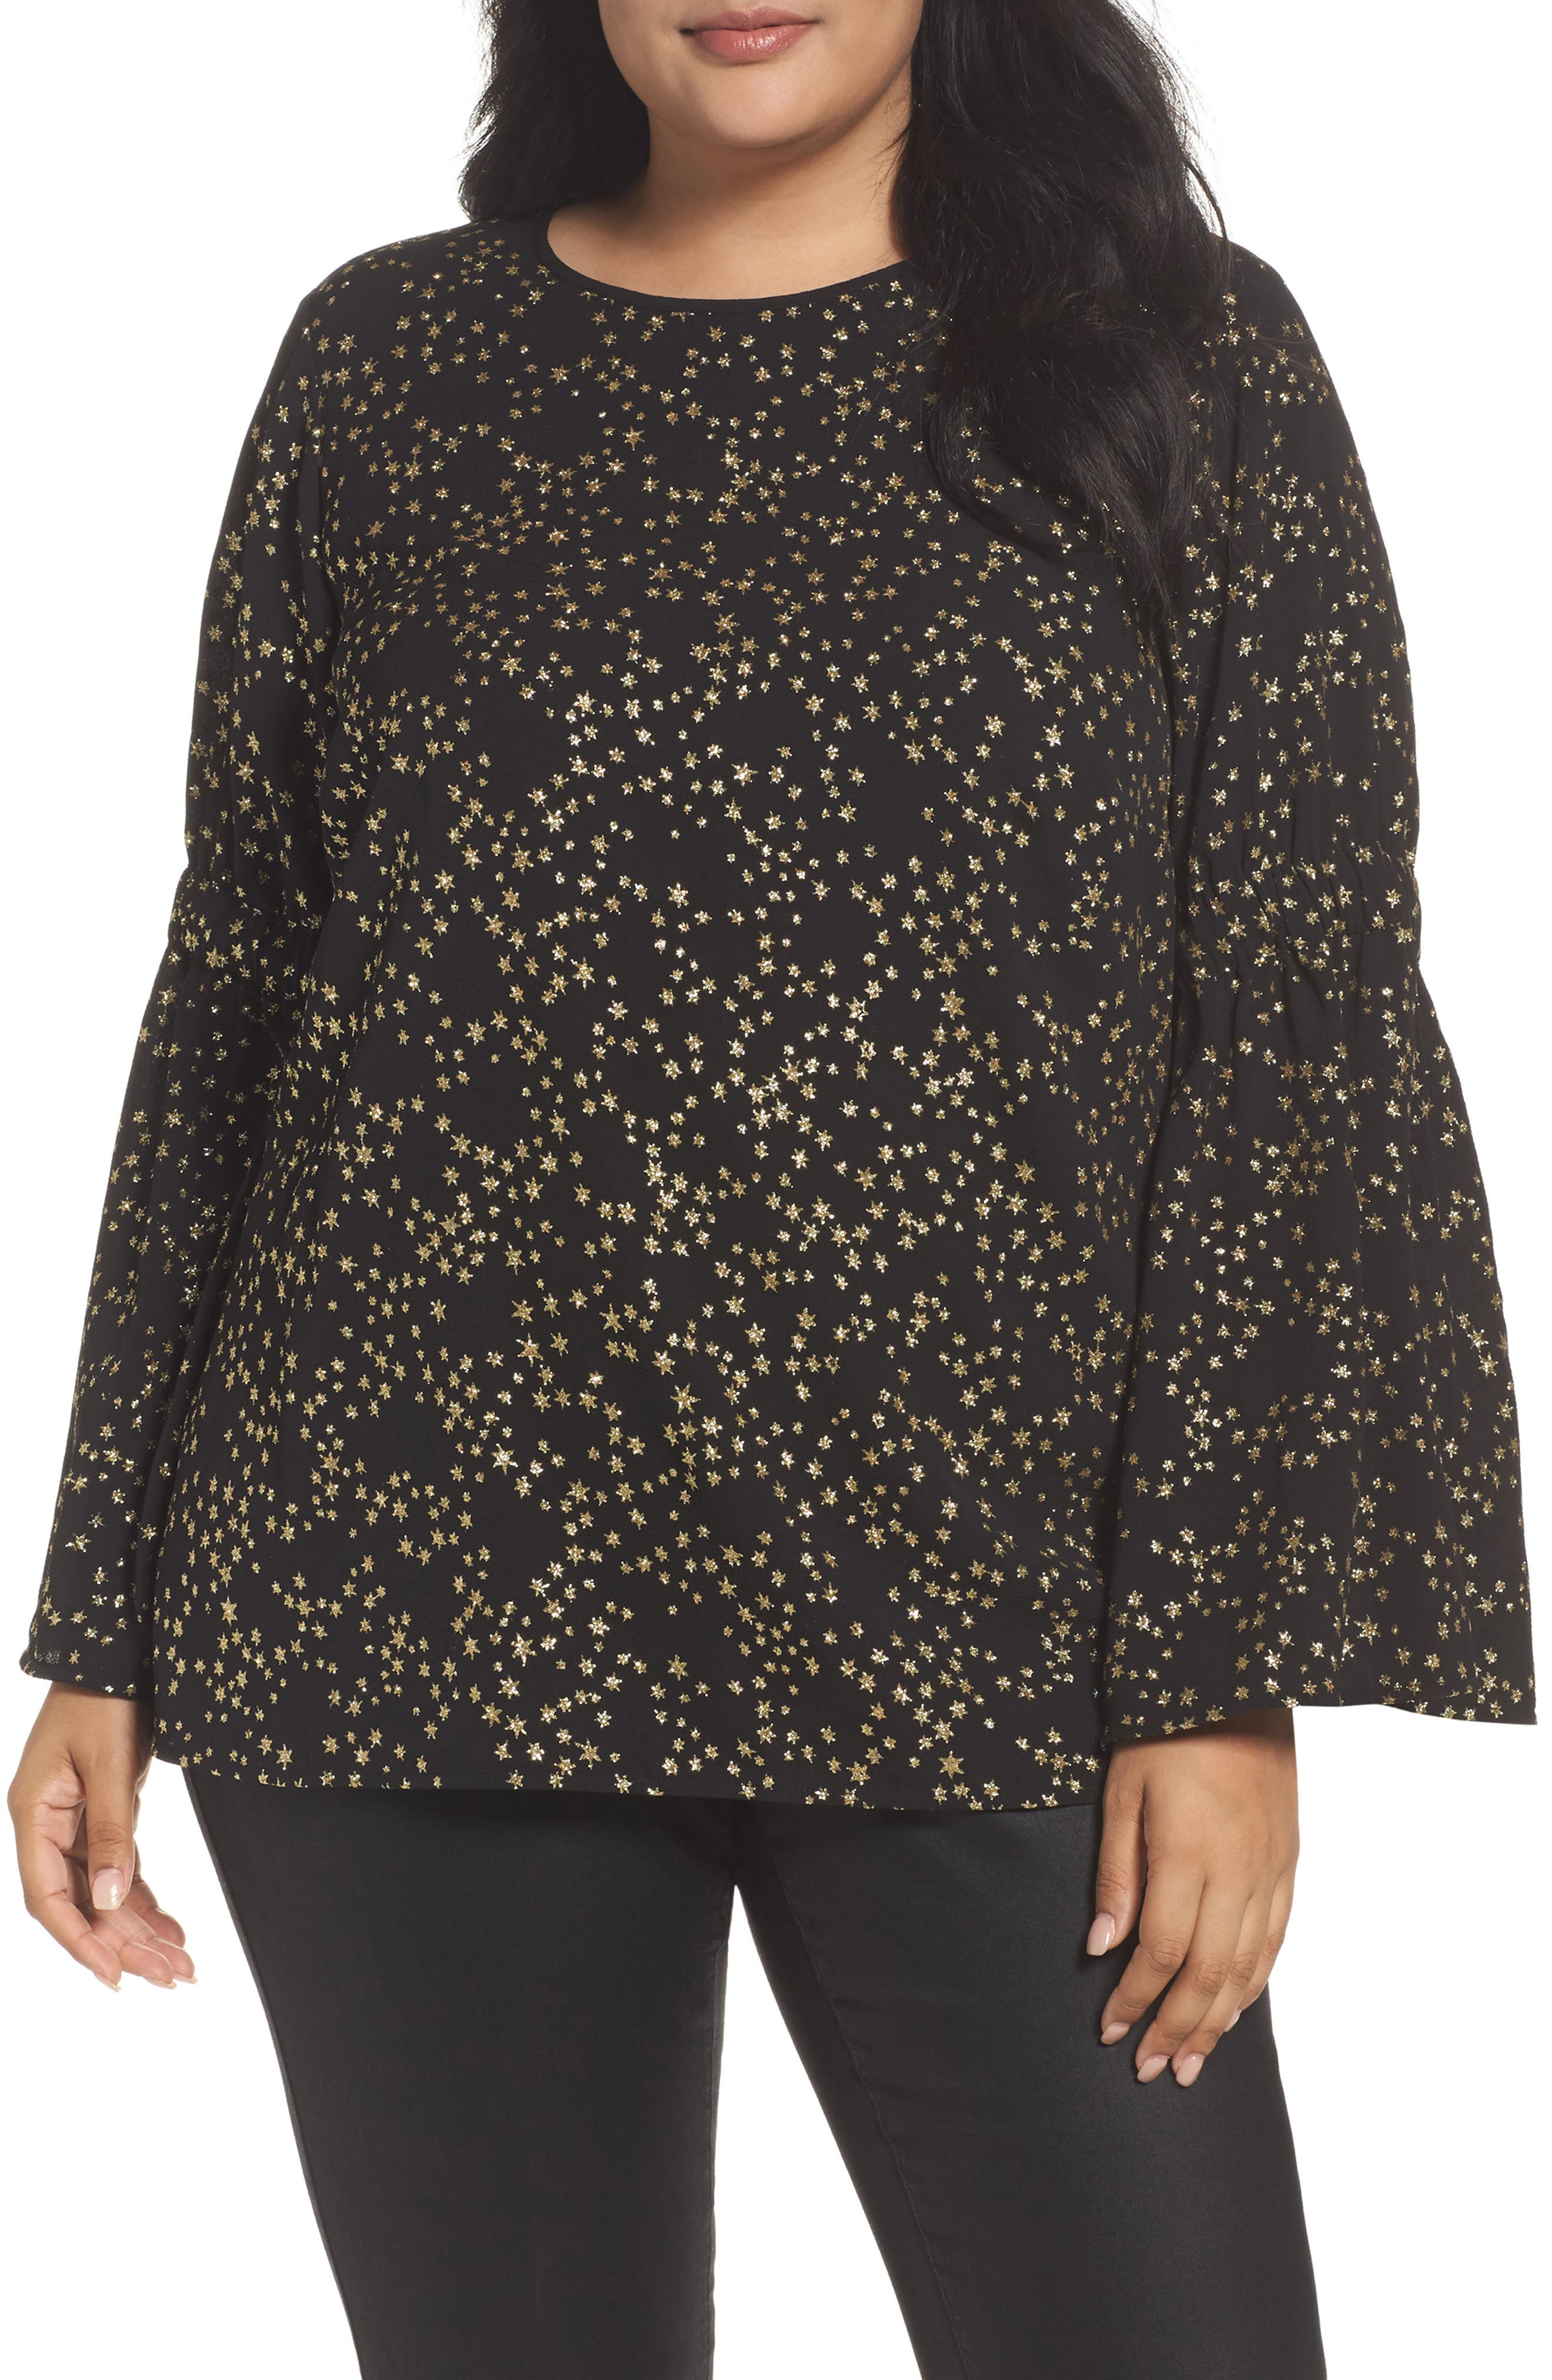 Shooting Star Bell Sleeve Top,                         Main,                         color, Black/ Gold